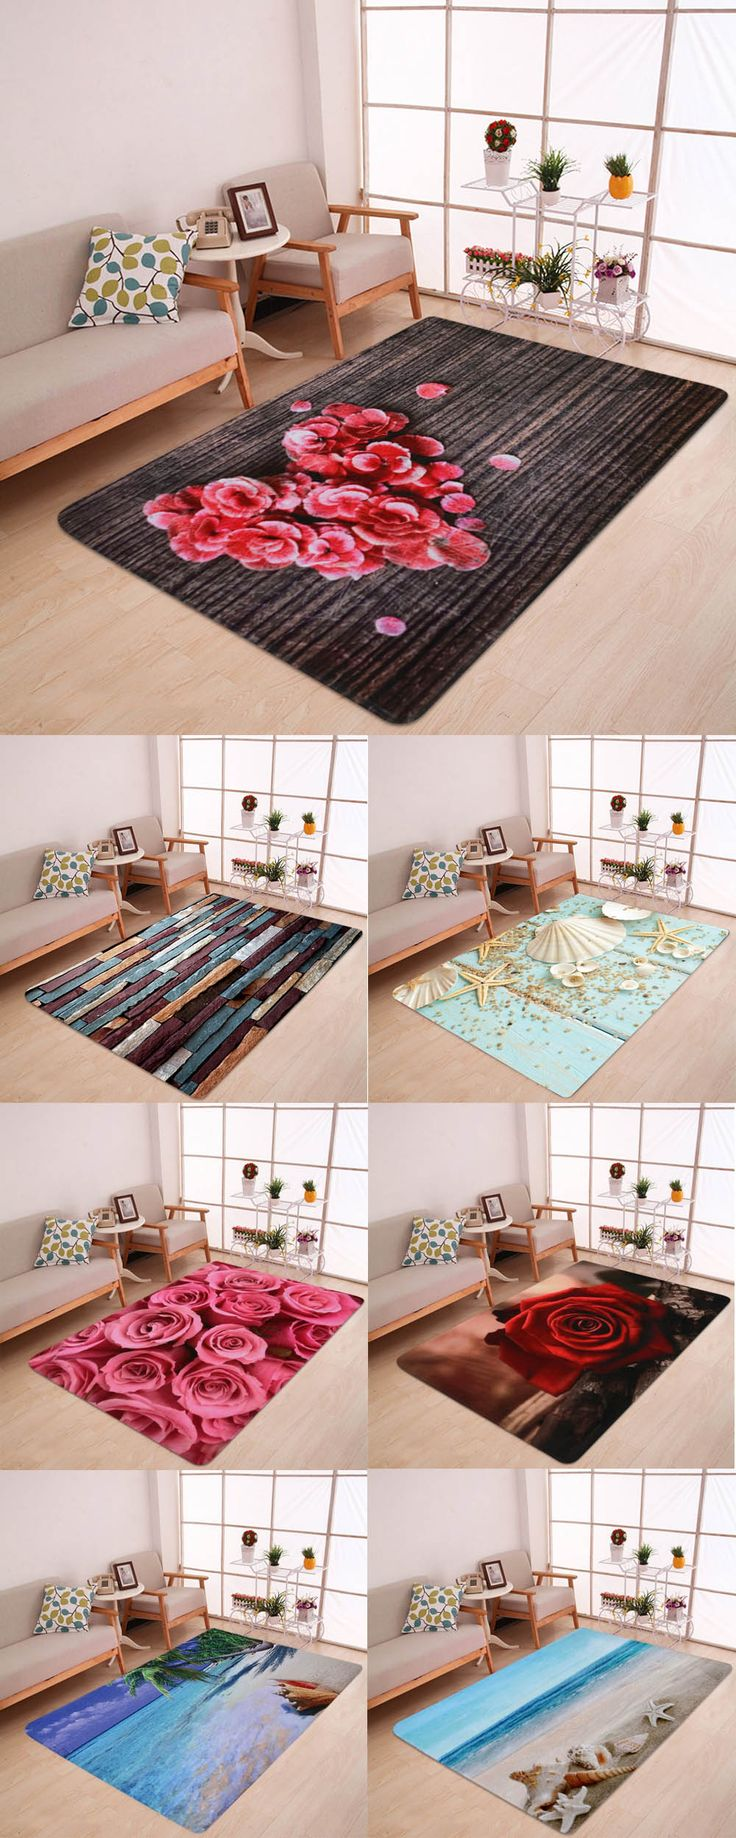 99e8407349749efba7fd071ee386a61e - Up to 80% off, Rosewholesale valentines day Water Absorption Area Rug - Red Brow...